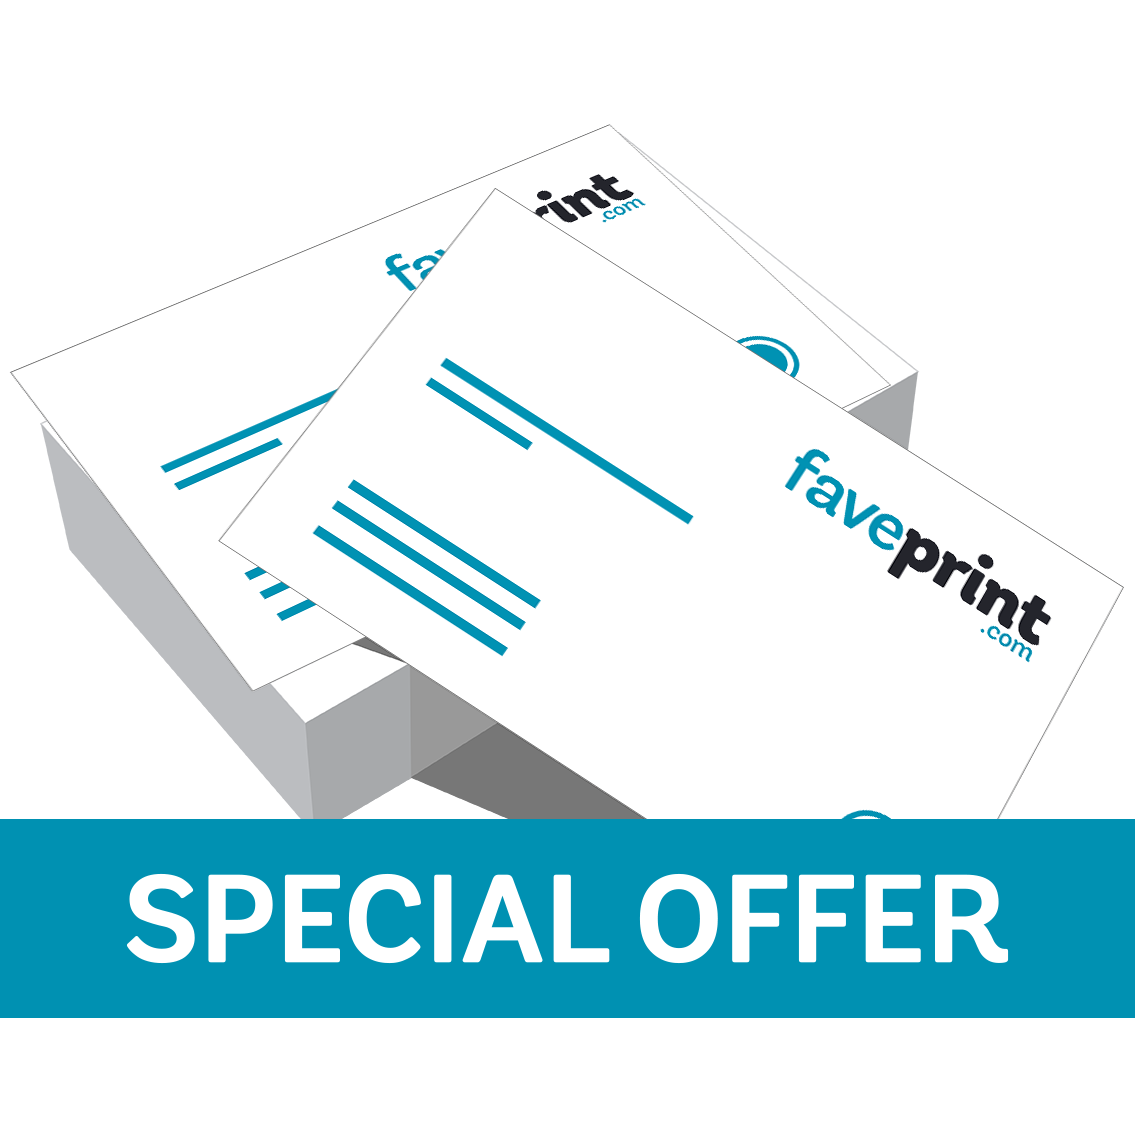 Business Cards Offer | Faveprint - Print on demand